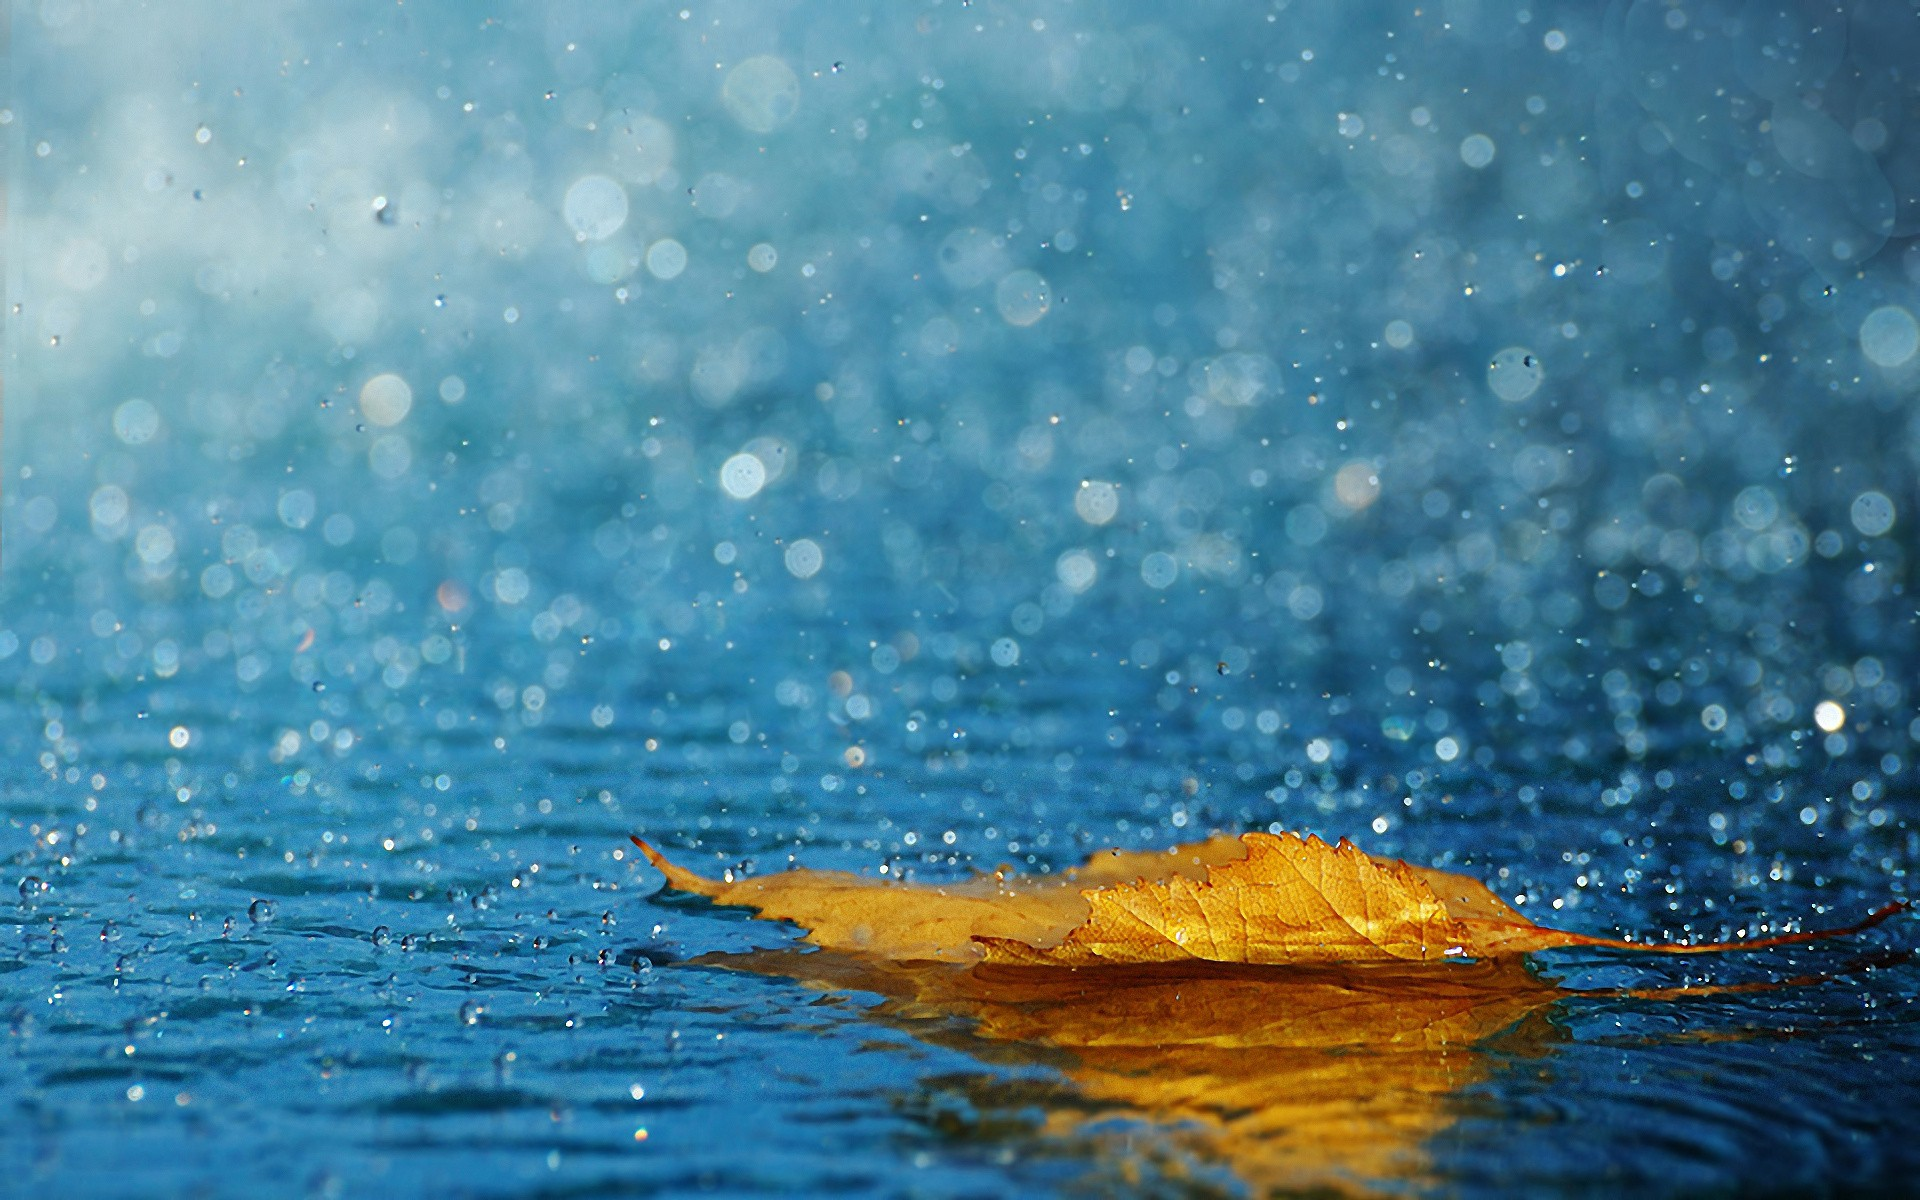 fresh air, fallen,leaves, leaves, drops,amazing nature, healthy ...